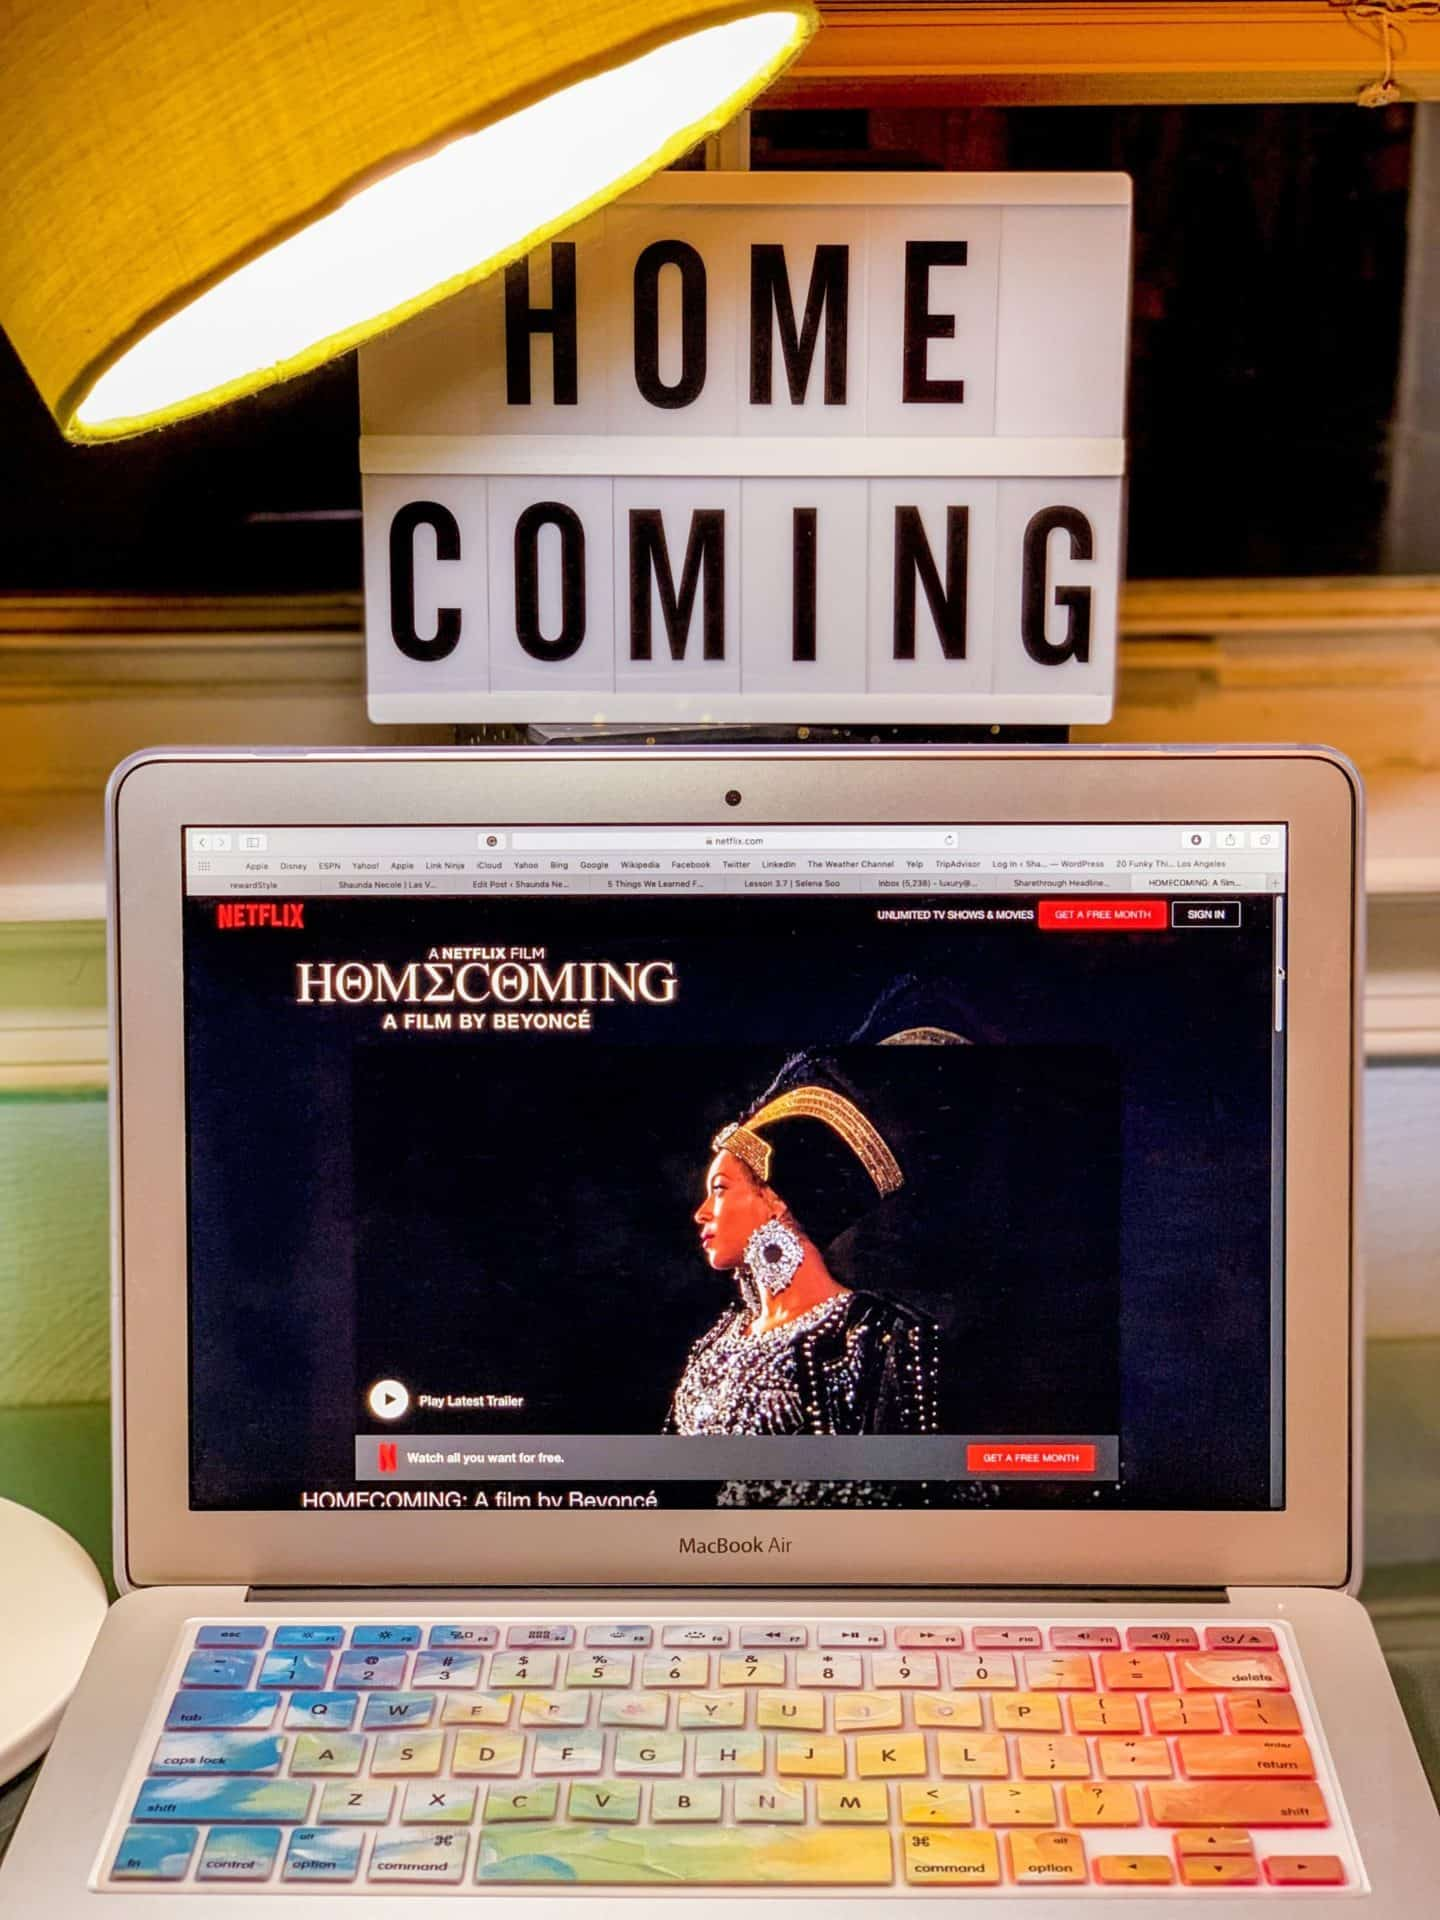 ShaundaNecole.com 5 Things We Learned From Watching Beyoncé's Netflix Documentary Homecoming